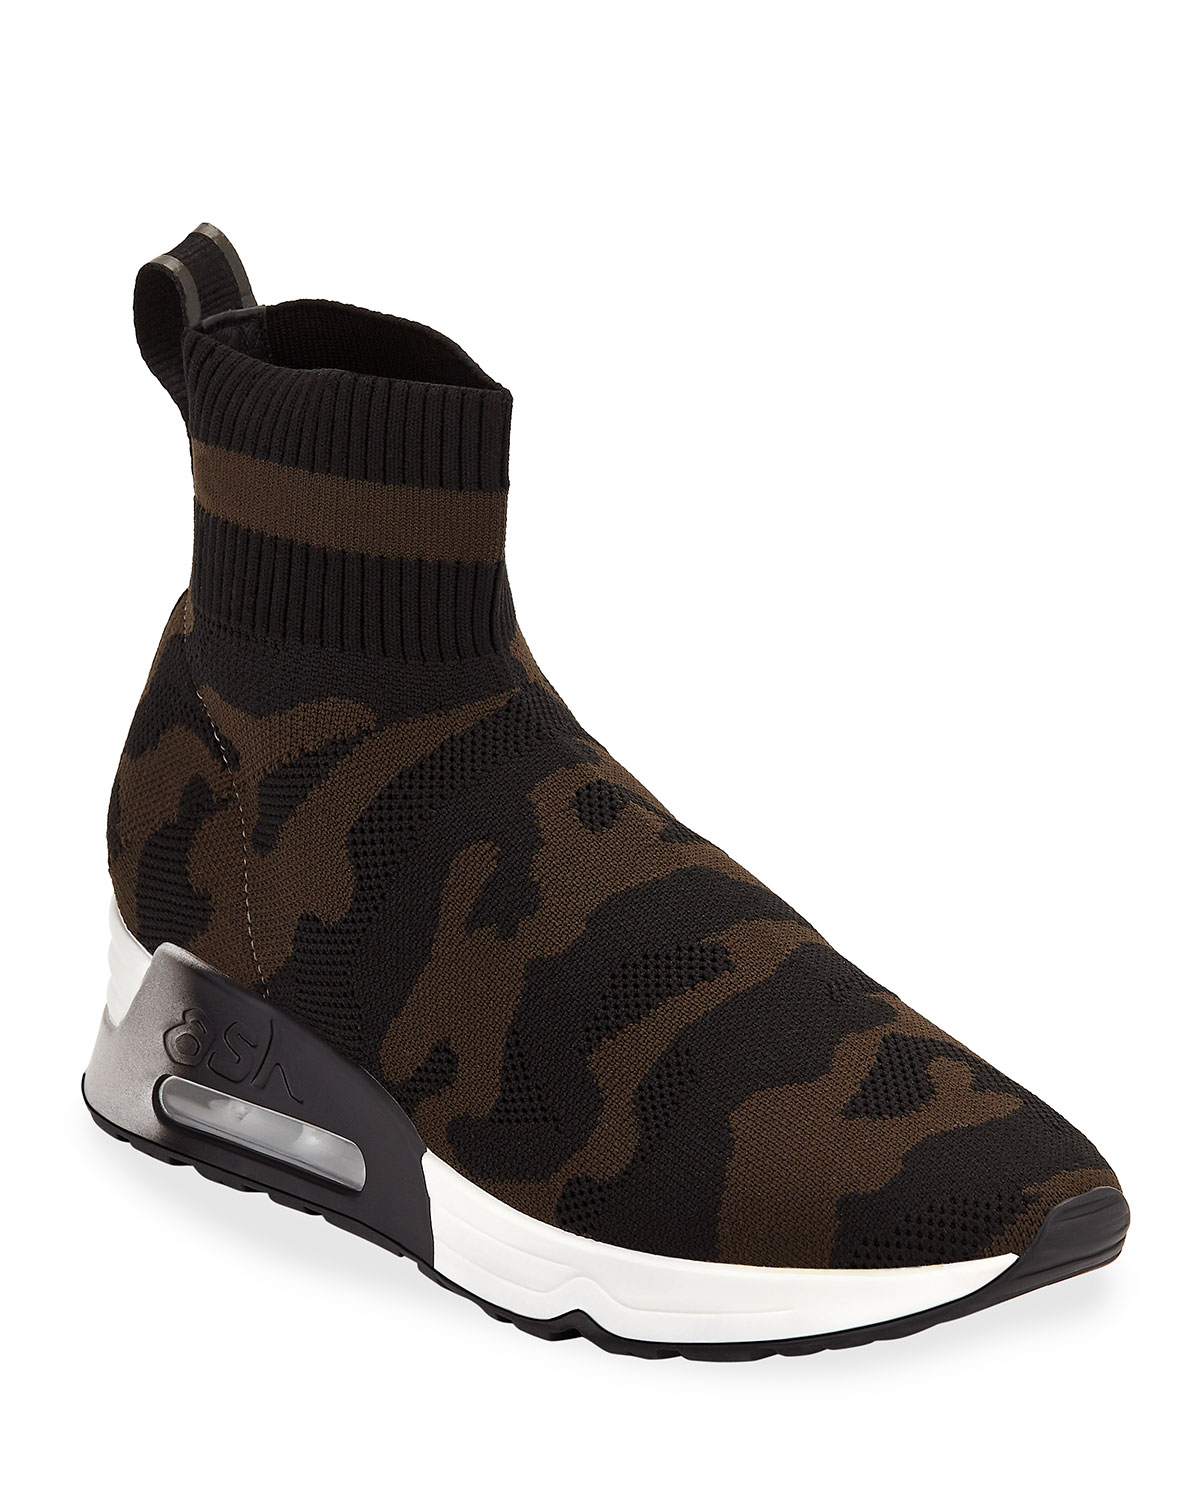 Lulu Camo Knit Runner Sneakers, Black - Military